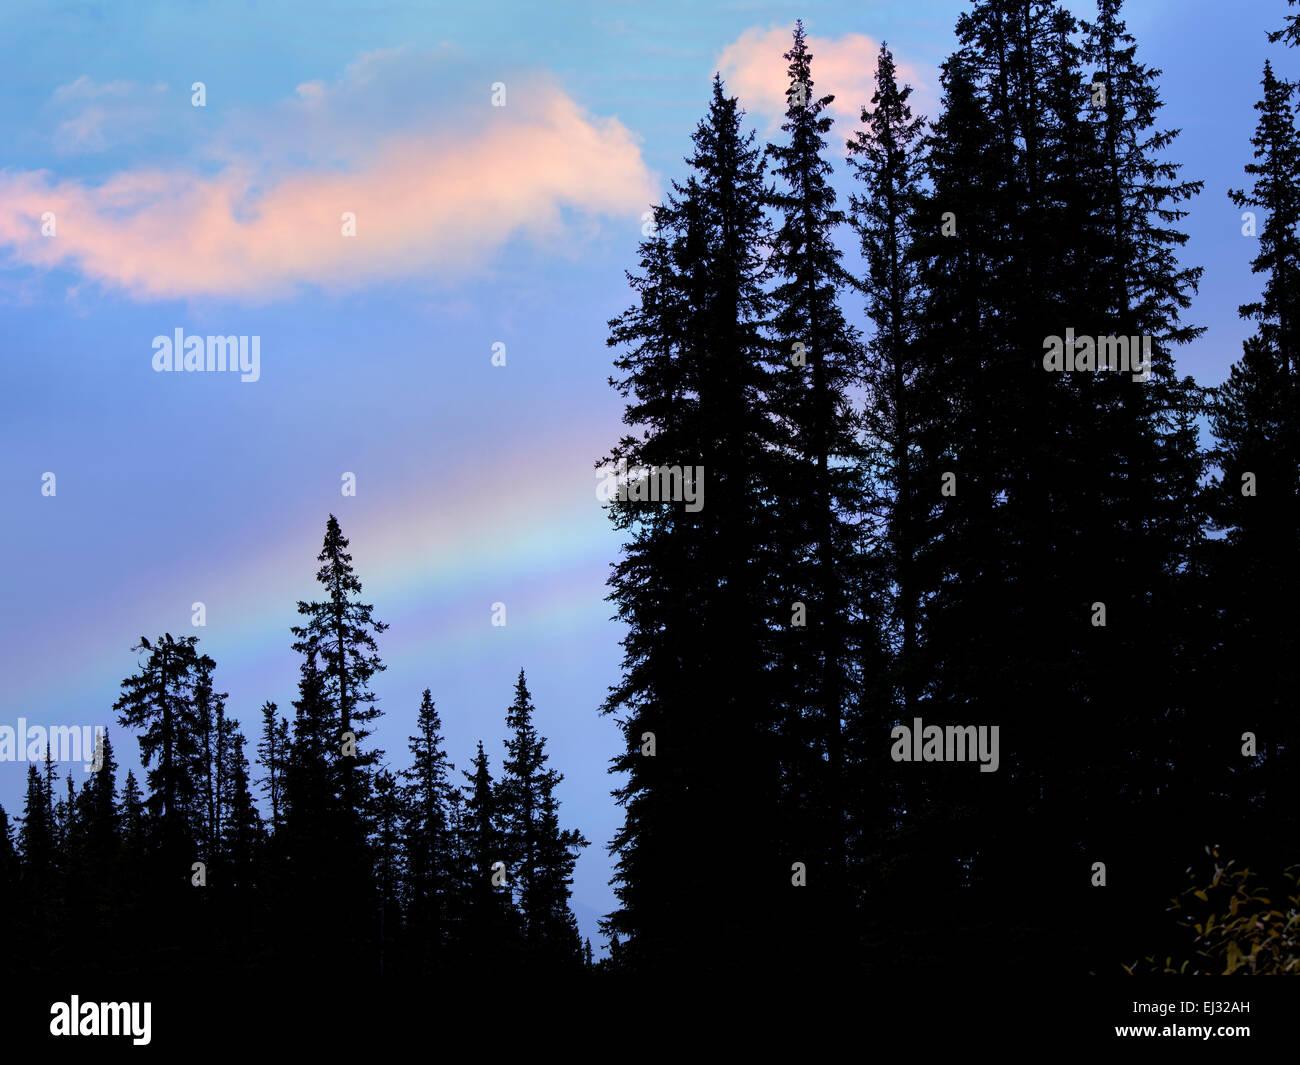 Rainbow over trees. Banff National Park, Canada - Stock Image